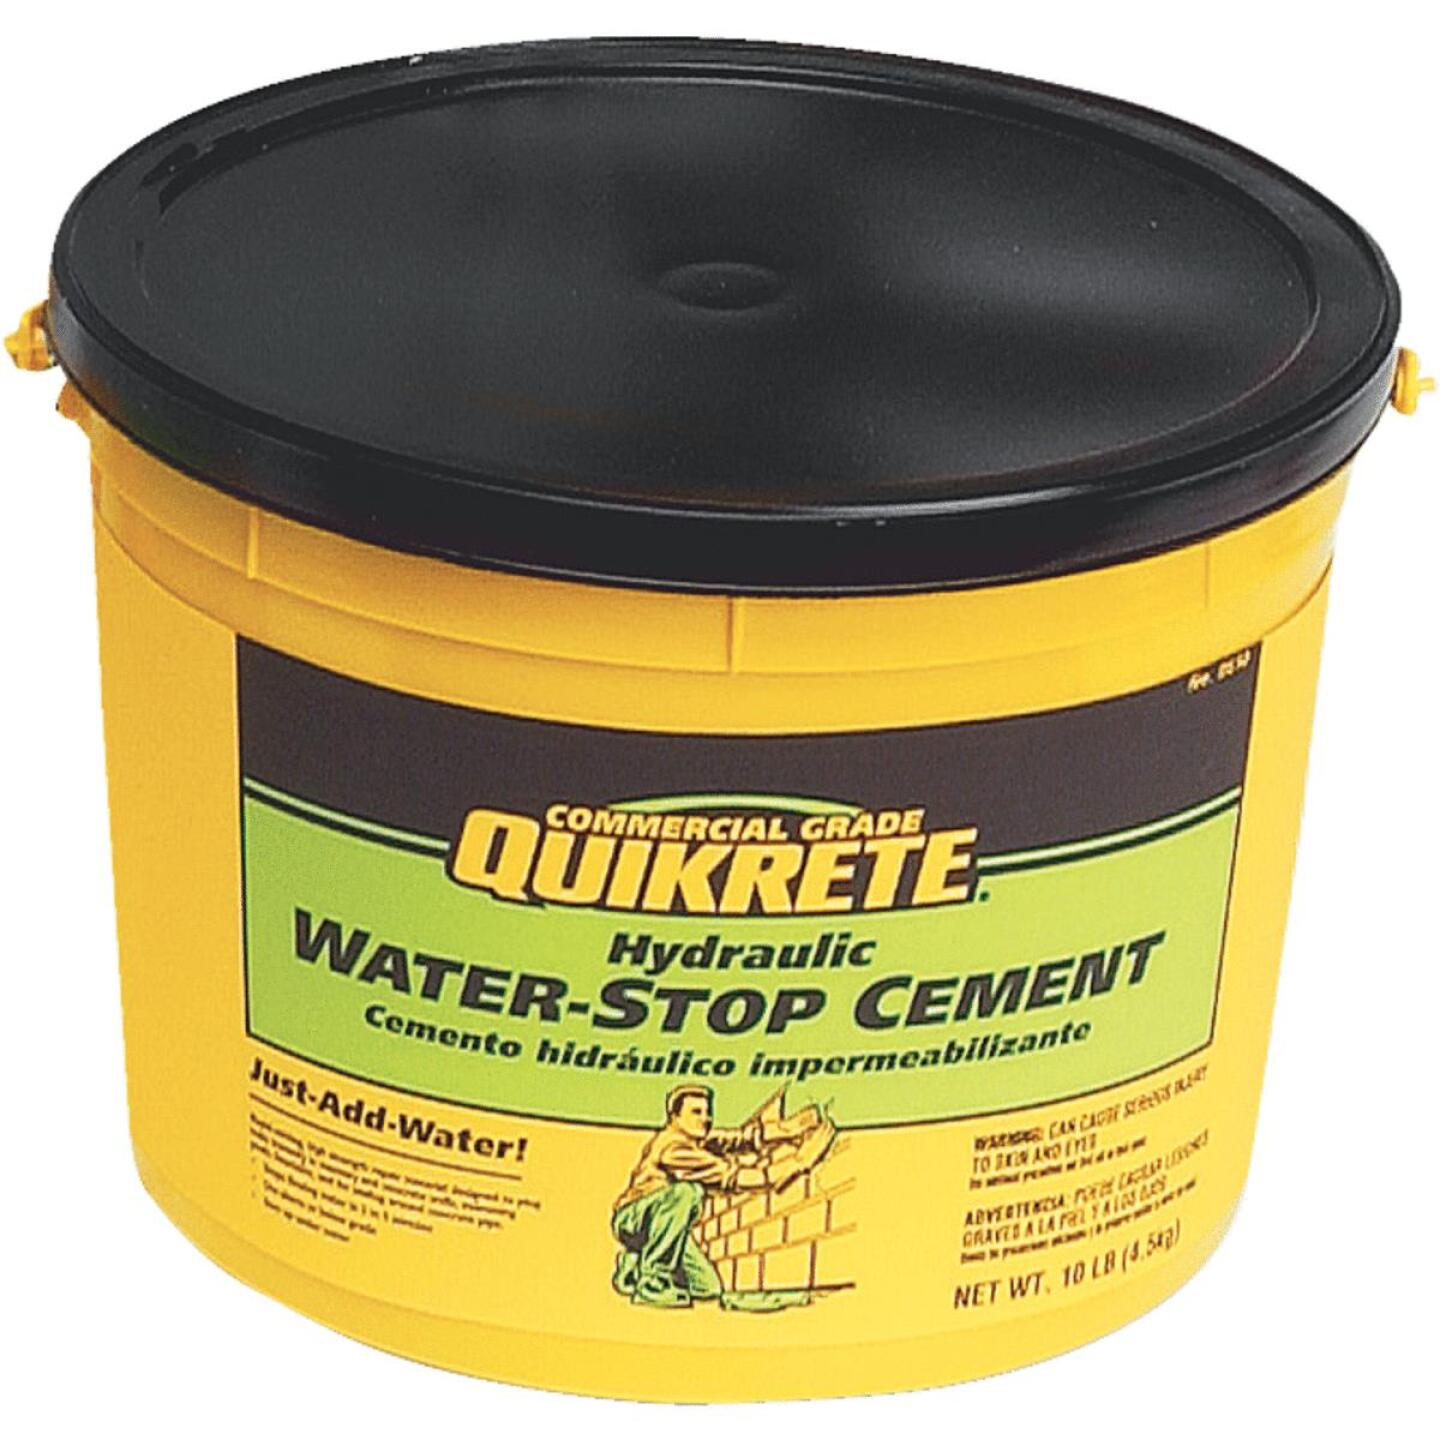 Quikrete 10 Lb Pail Hydraulic Water Stop Cement Image 1